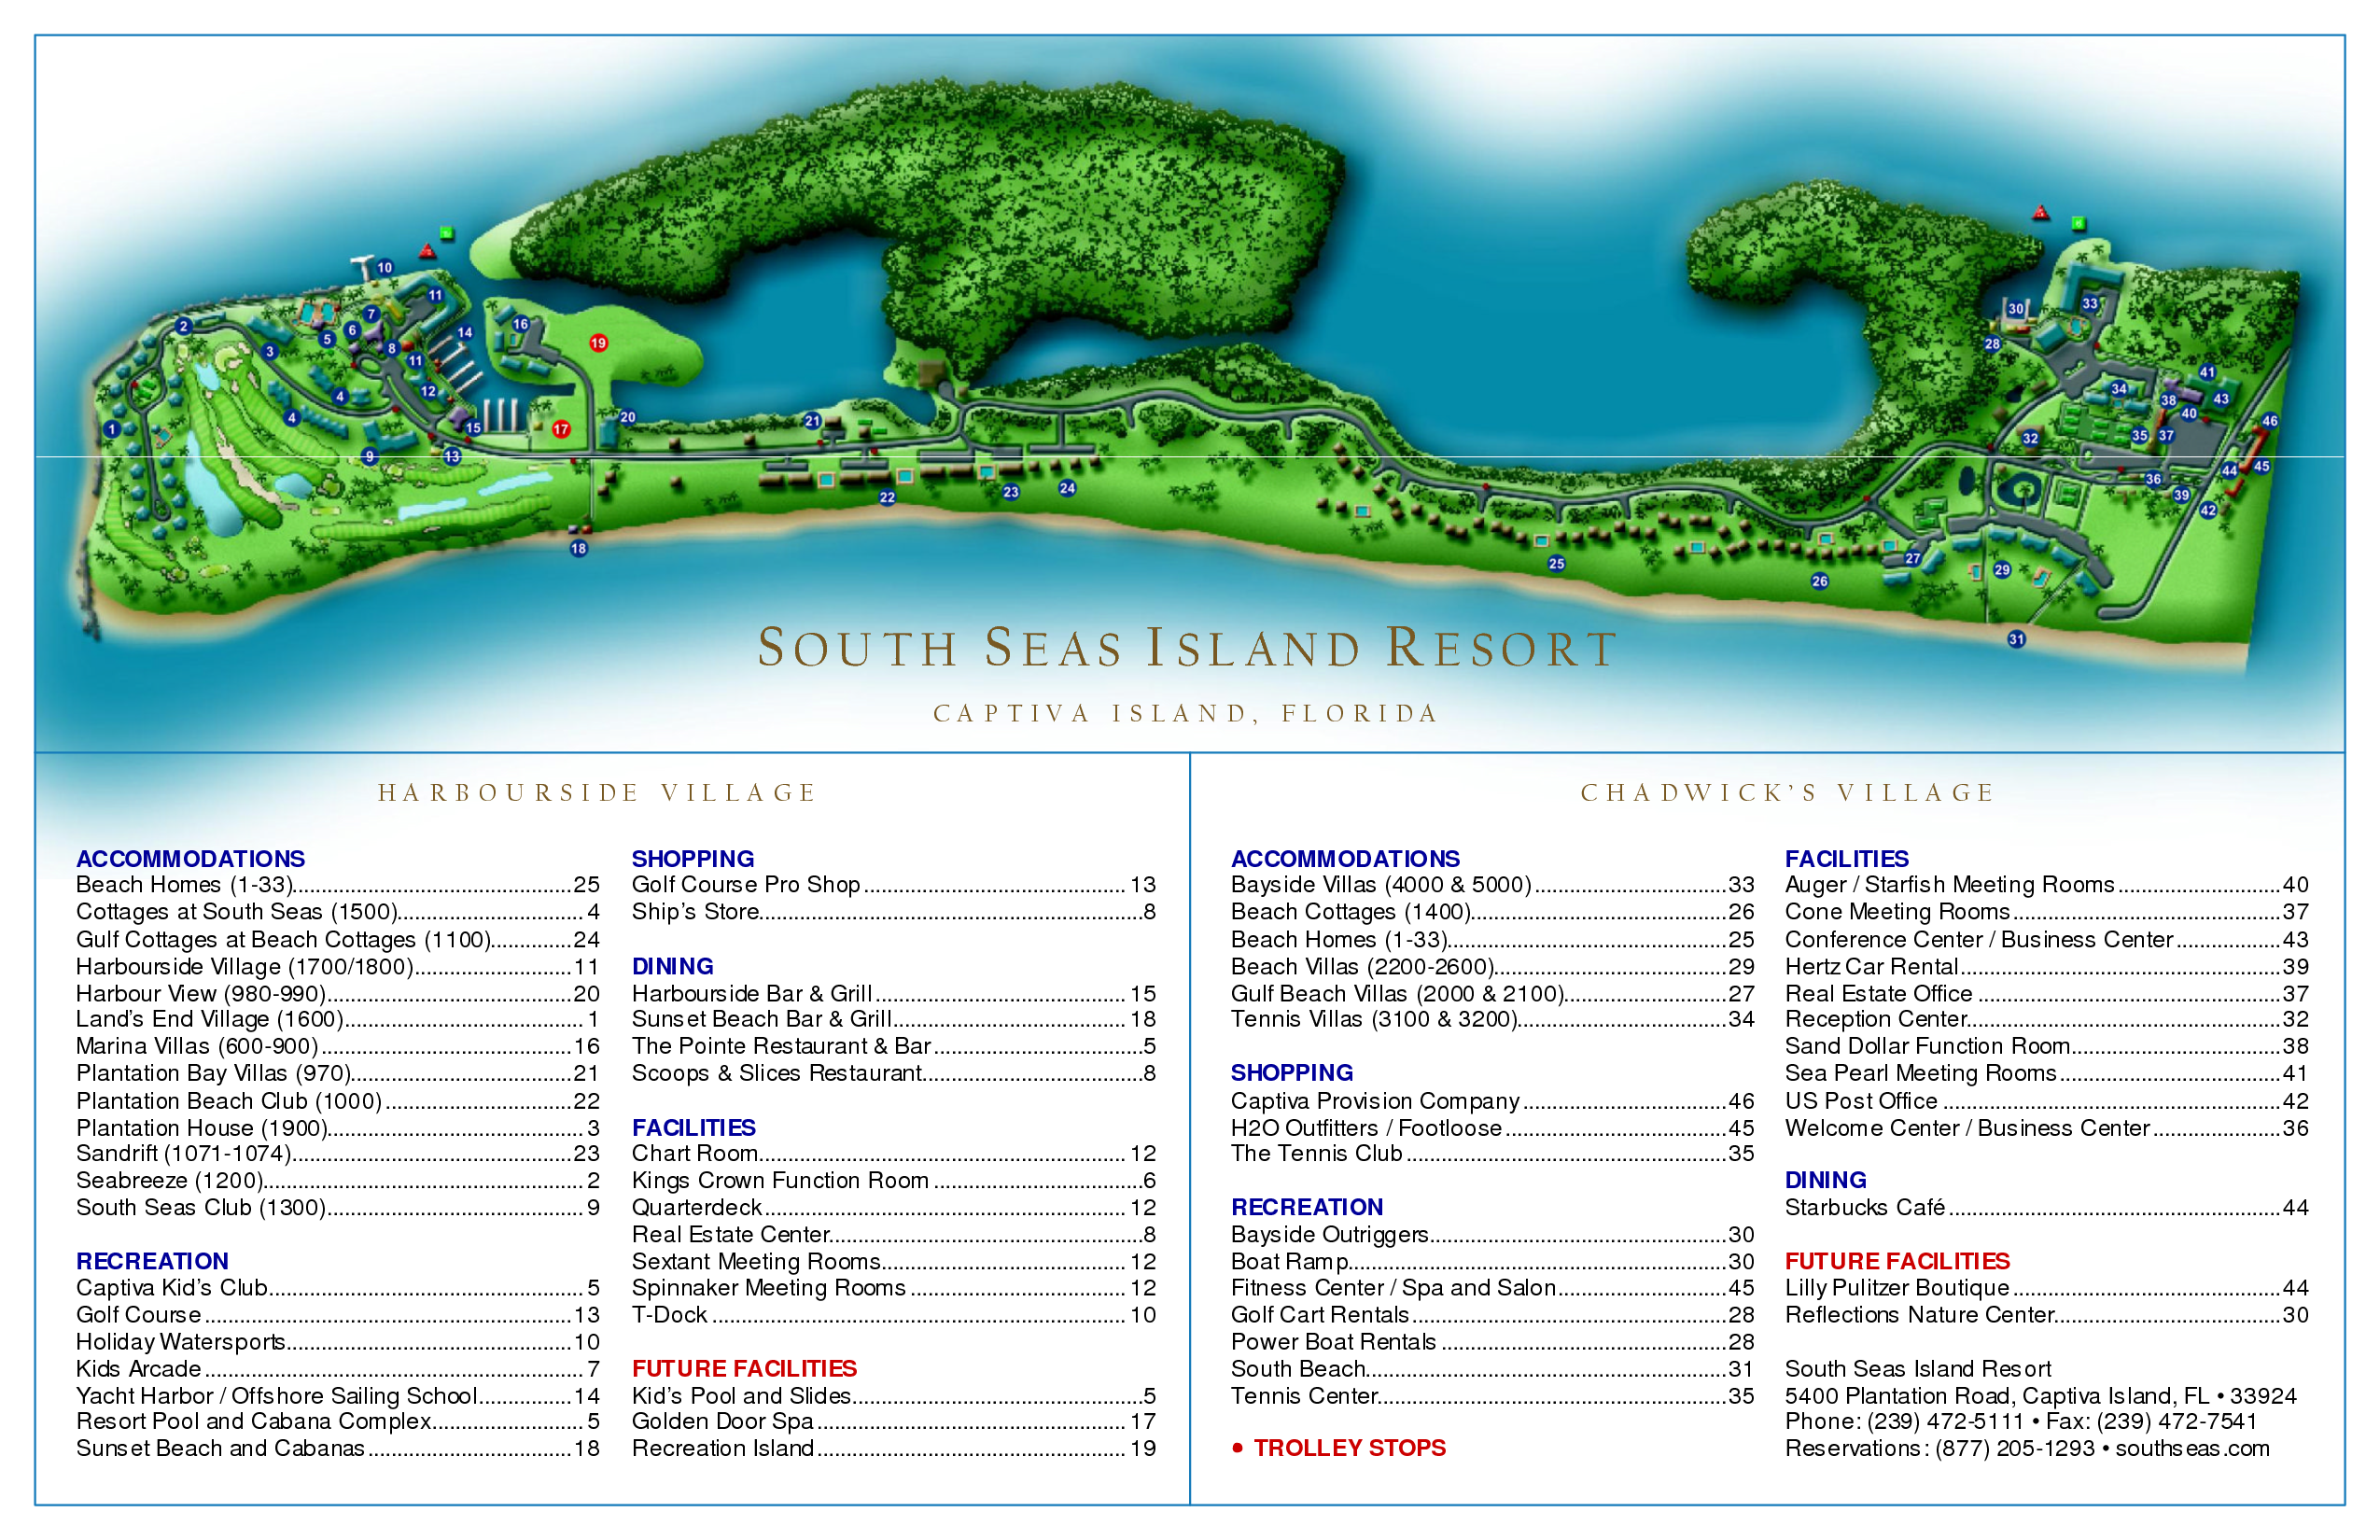 South Seas Island Resort Map Plantation Bay Villas at South Seas Island Resort map   Google